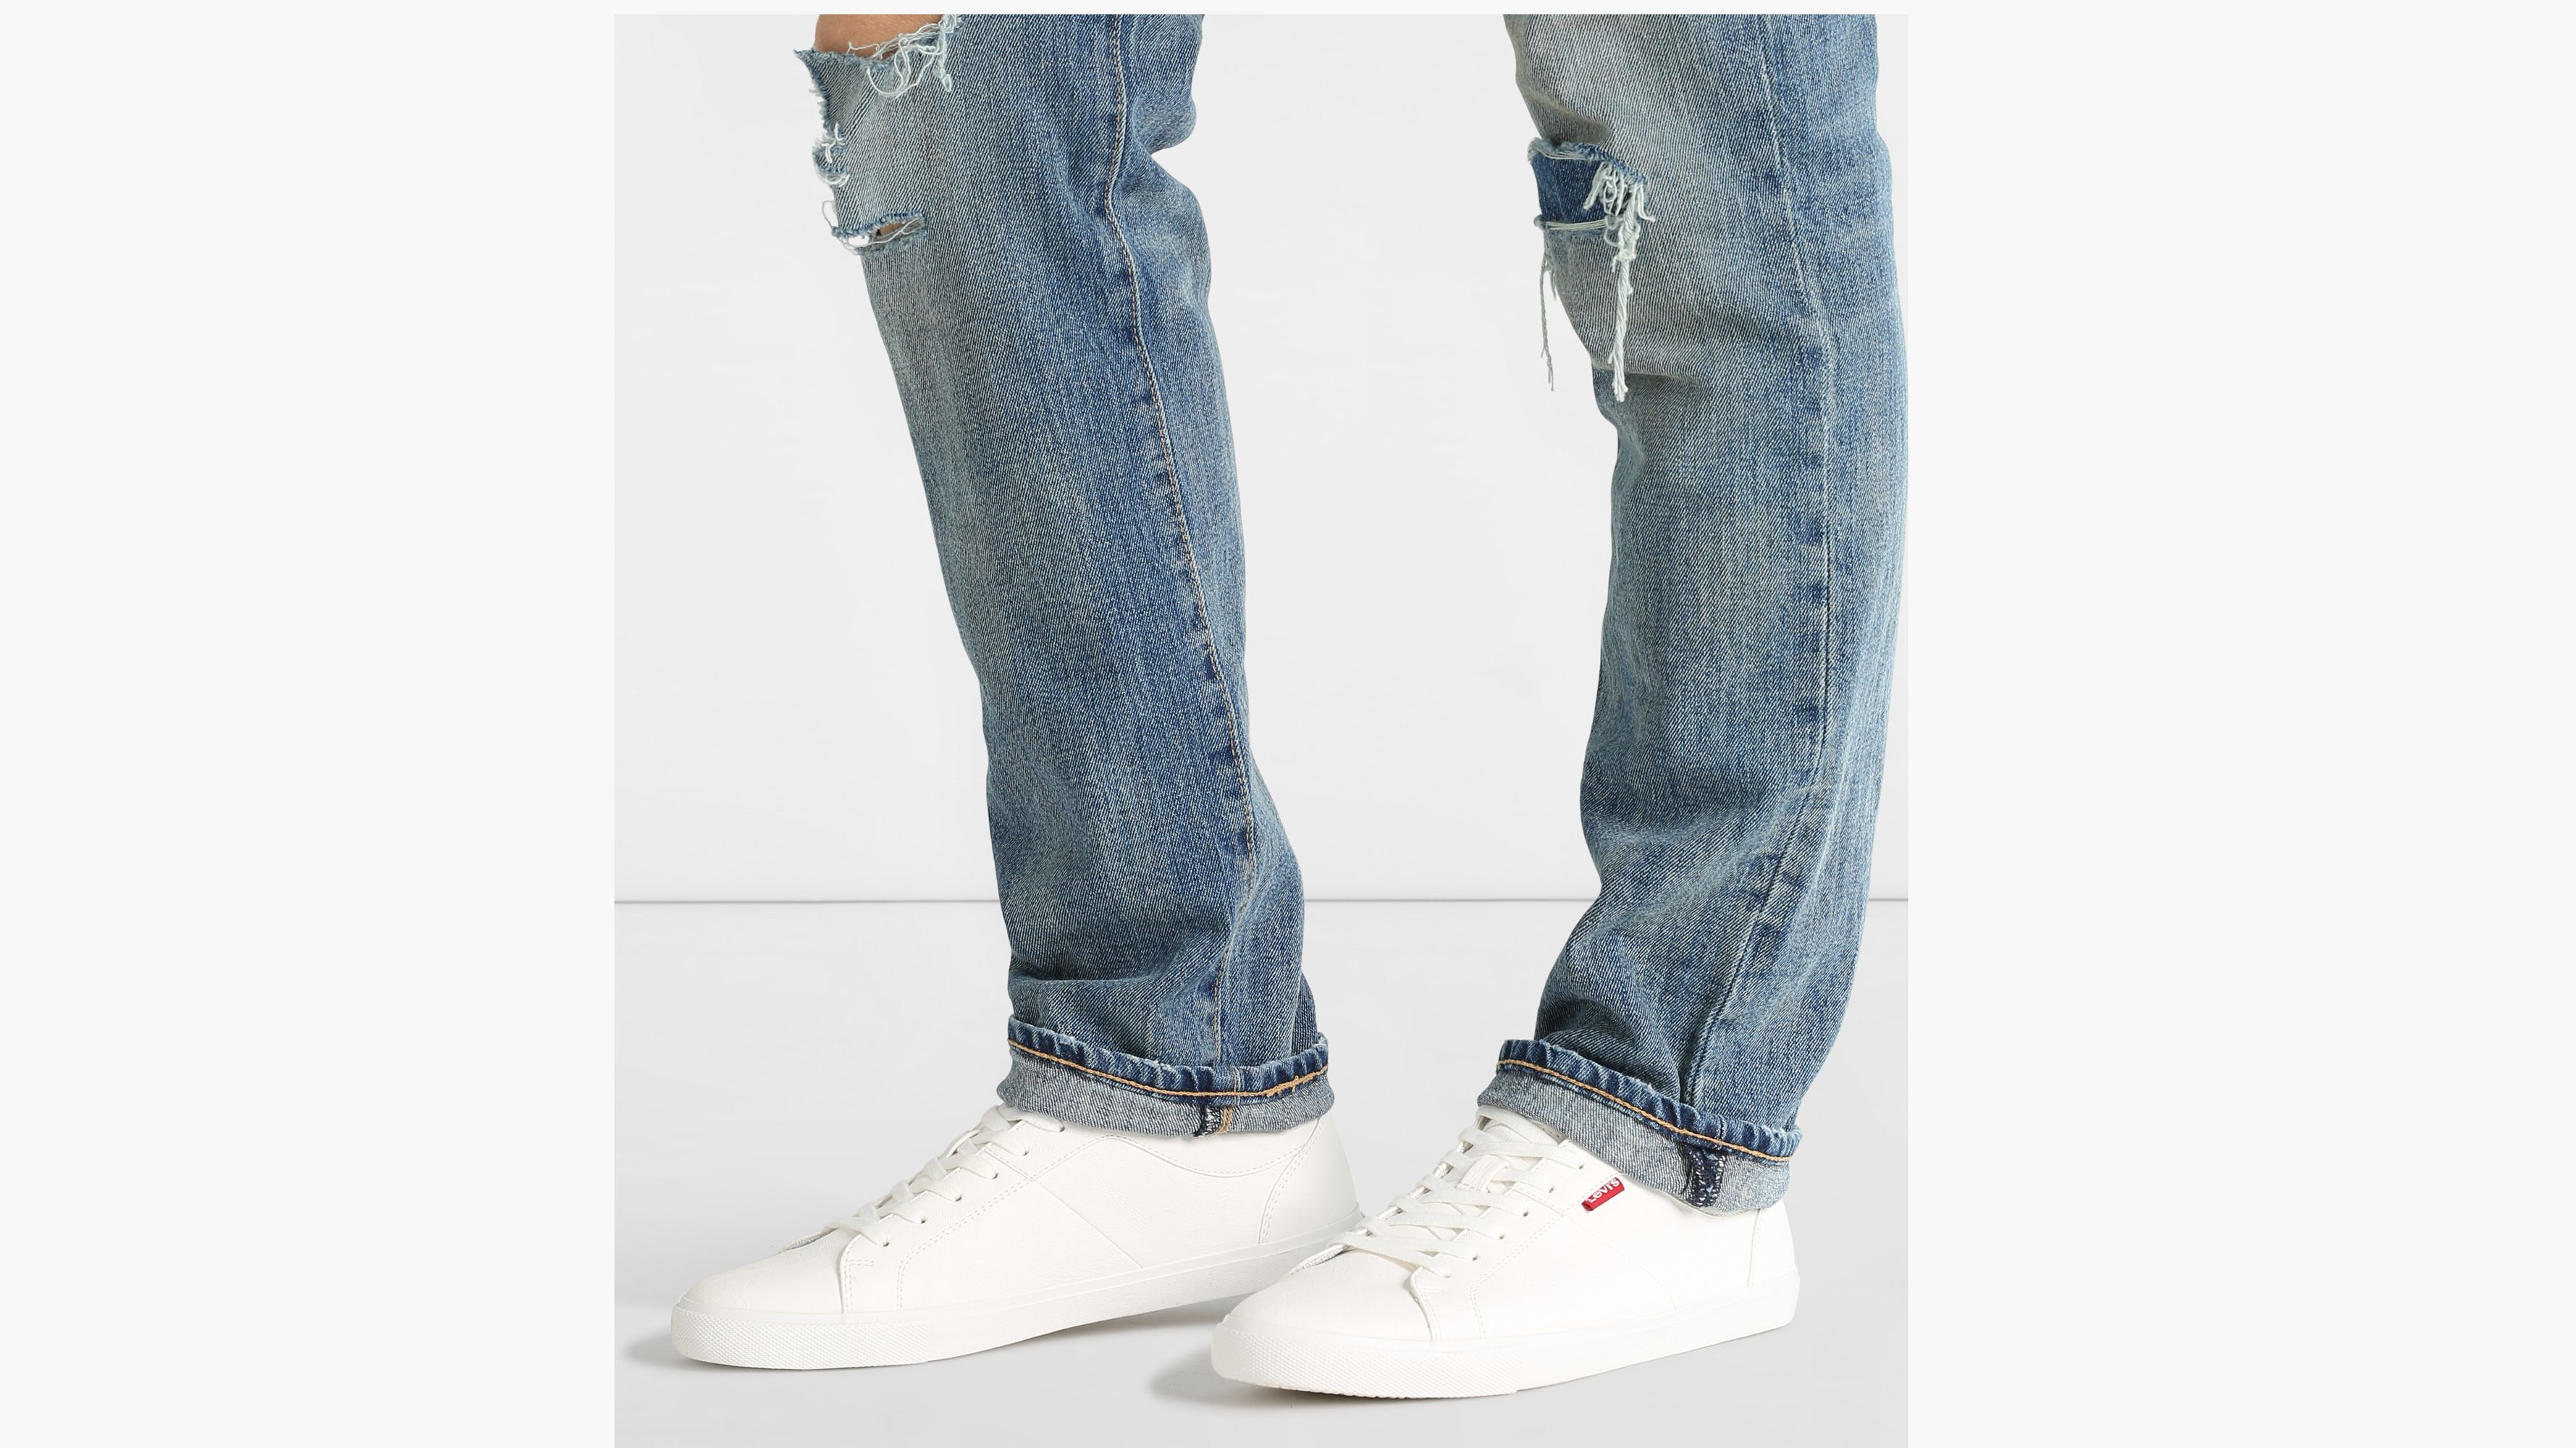 Woods Sneakers - White   Levi's® NO